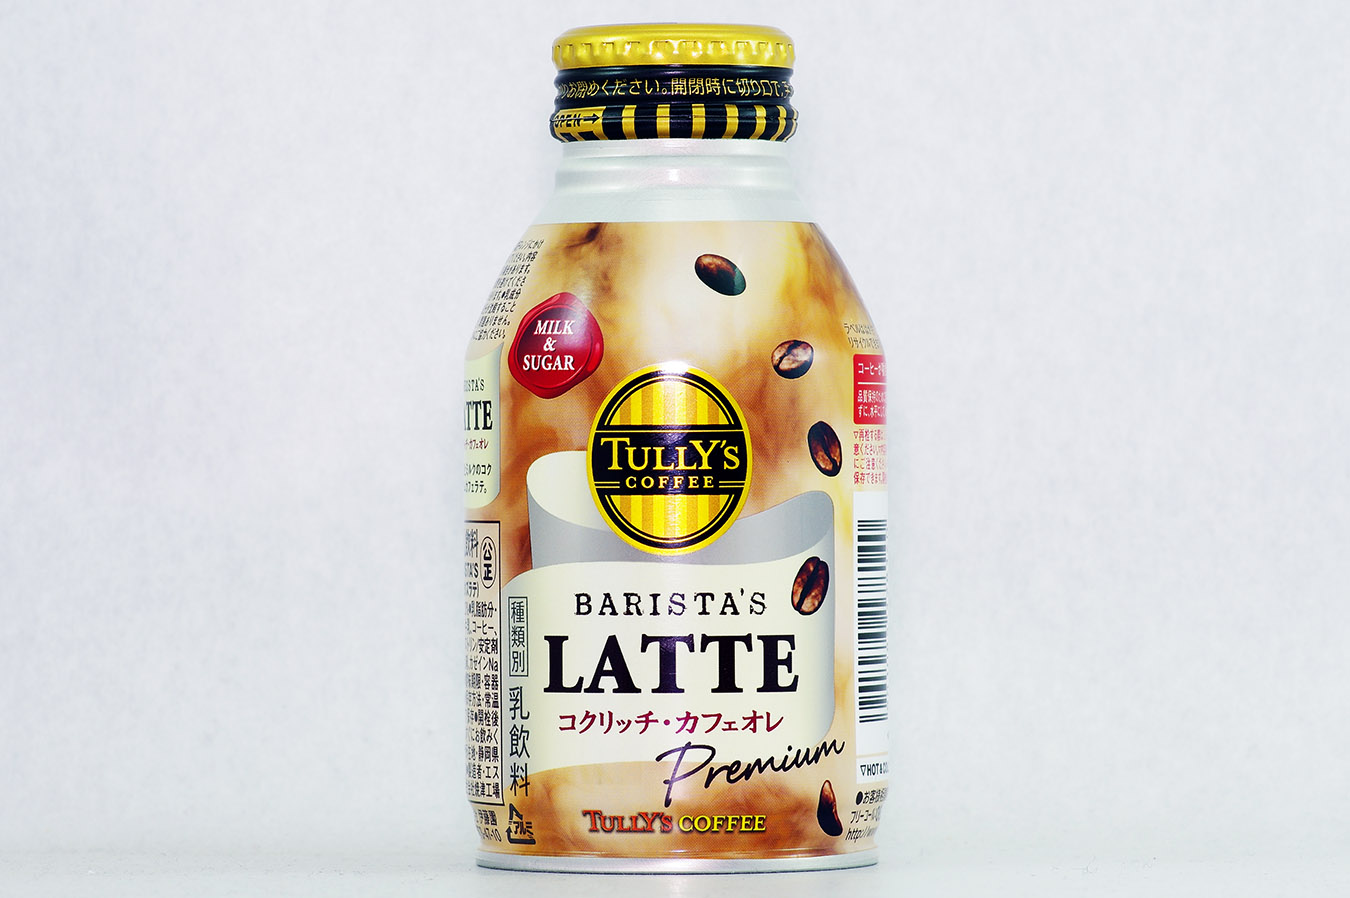 TULLY'S COFFEE BARISTA'S LATTE コクリッチ・カフェオレ 2016年4月